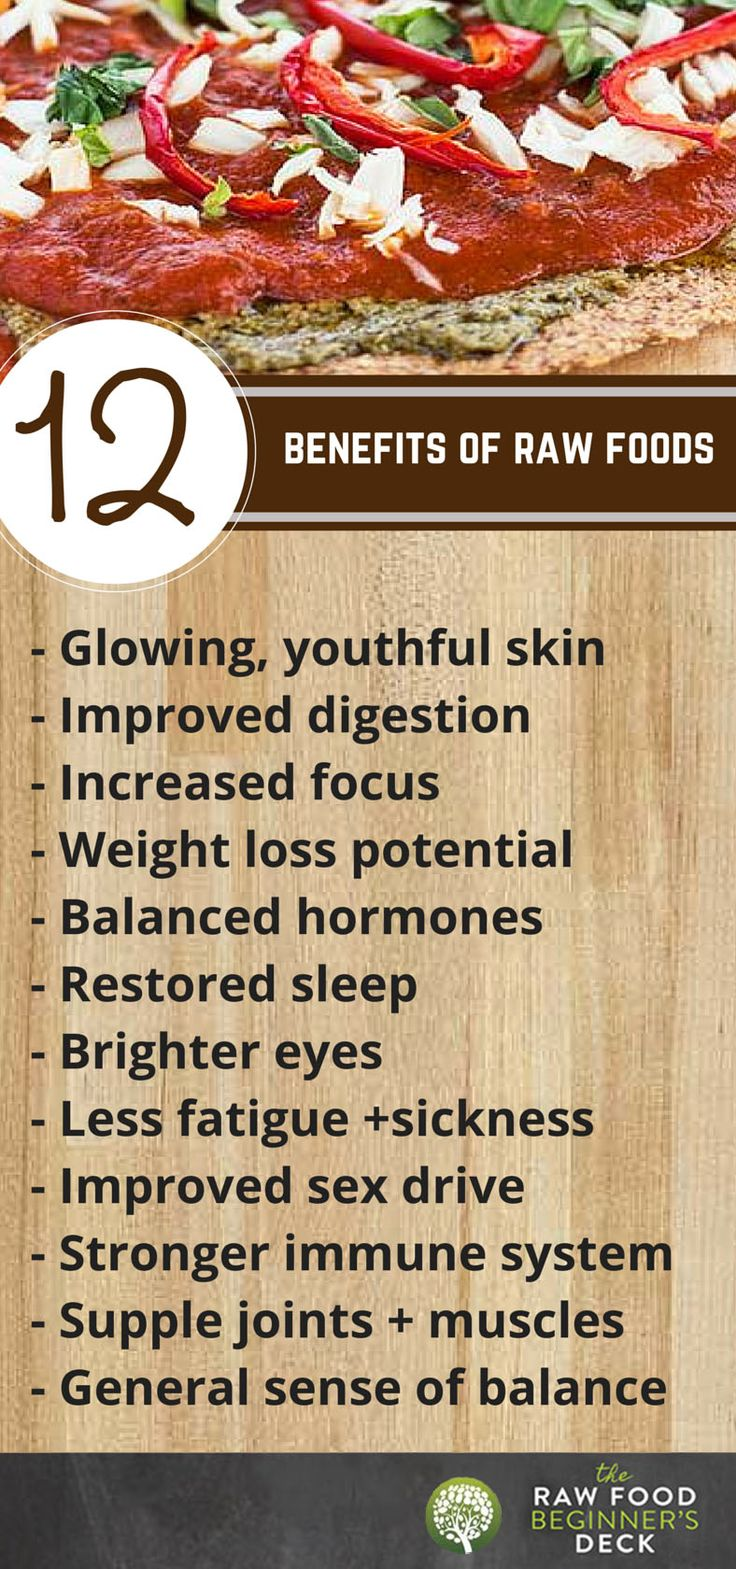 Benefits of eating raw foods! There are different levels of being raw... start one meal at a time!